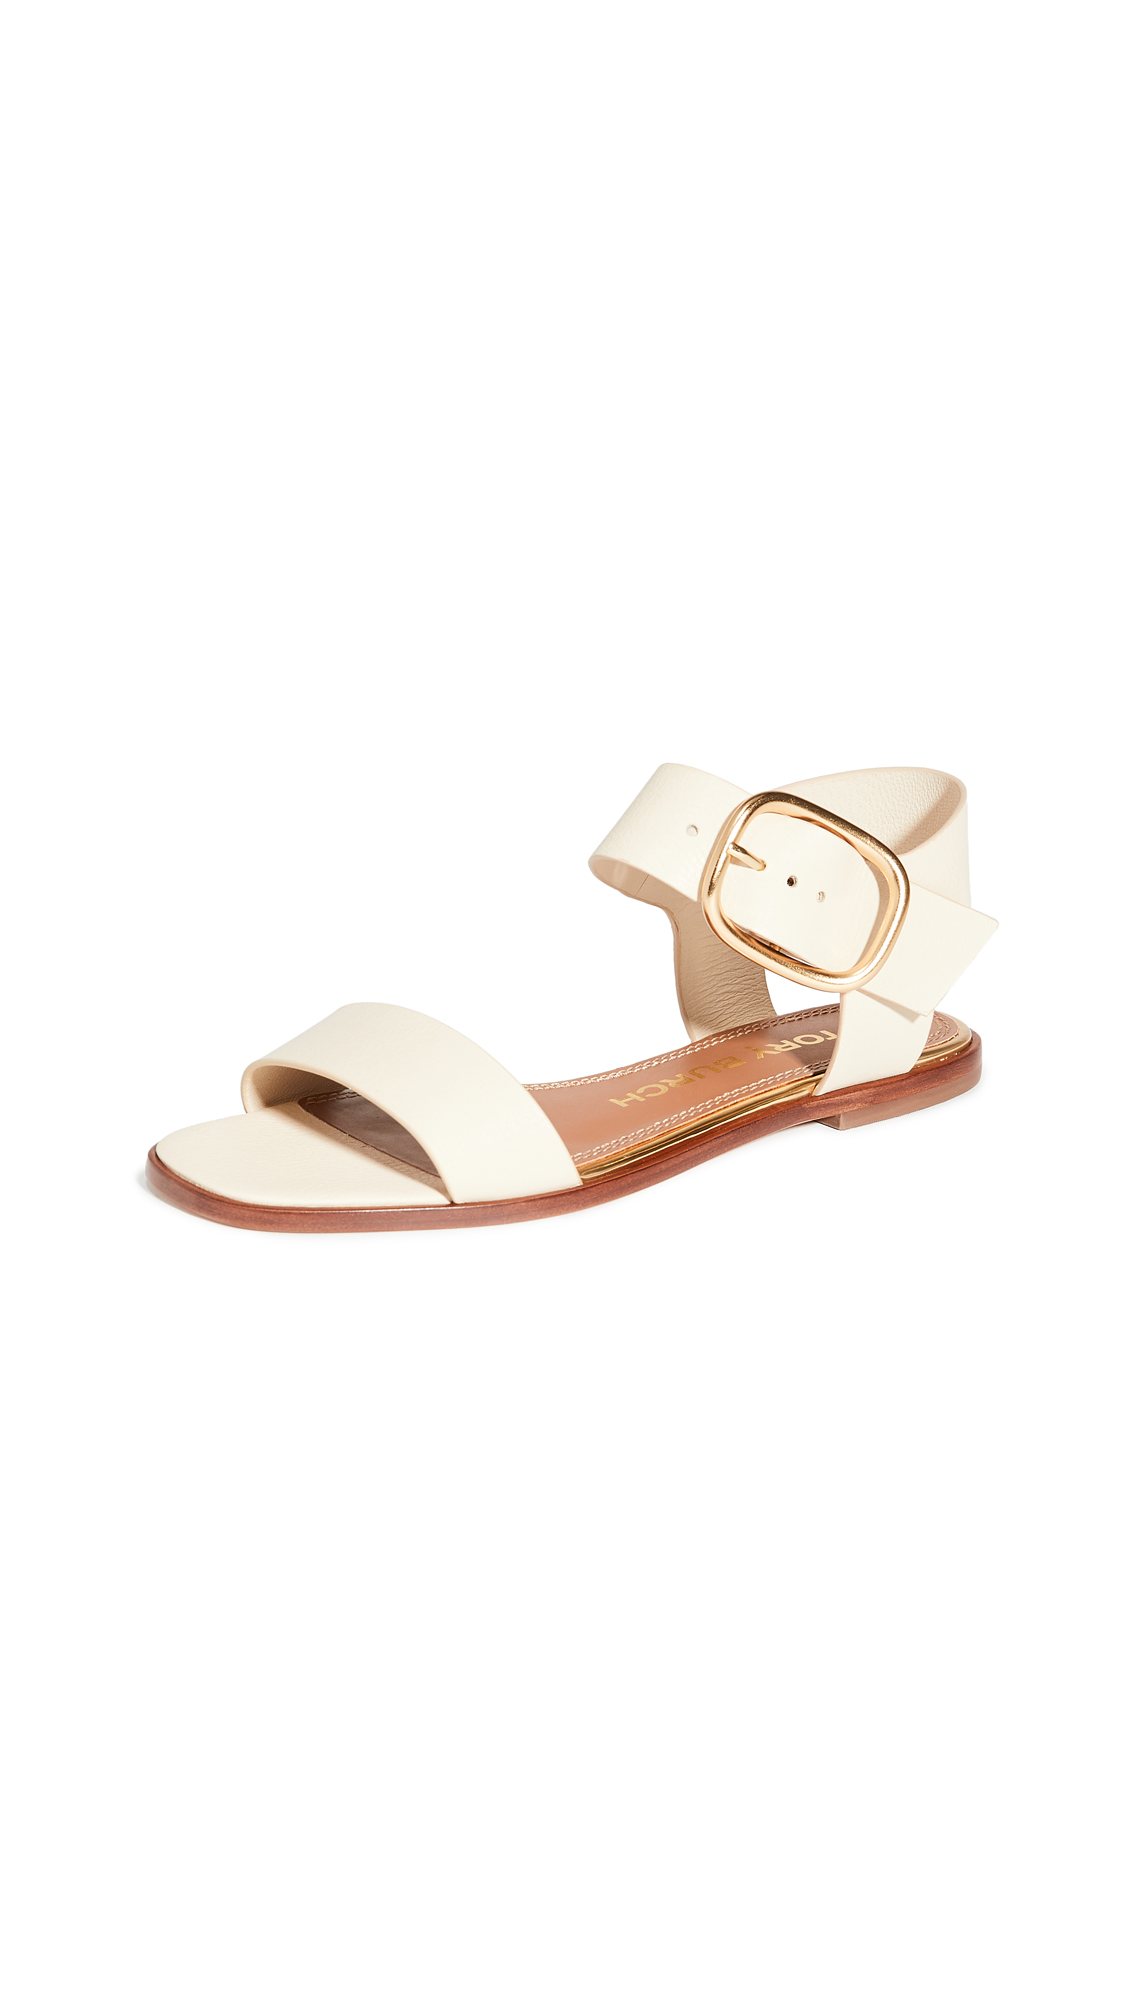 Buy Tory Burch Selby Flat Sandals online, shop Tory Burch